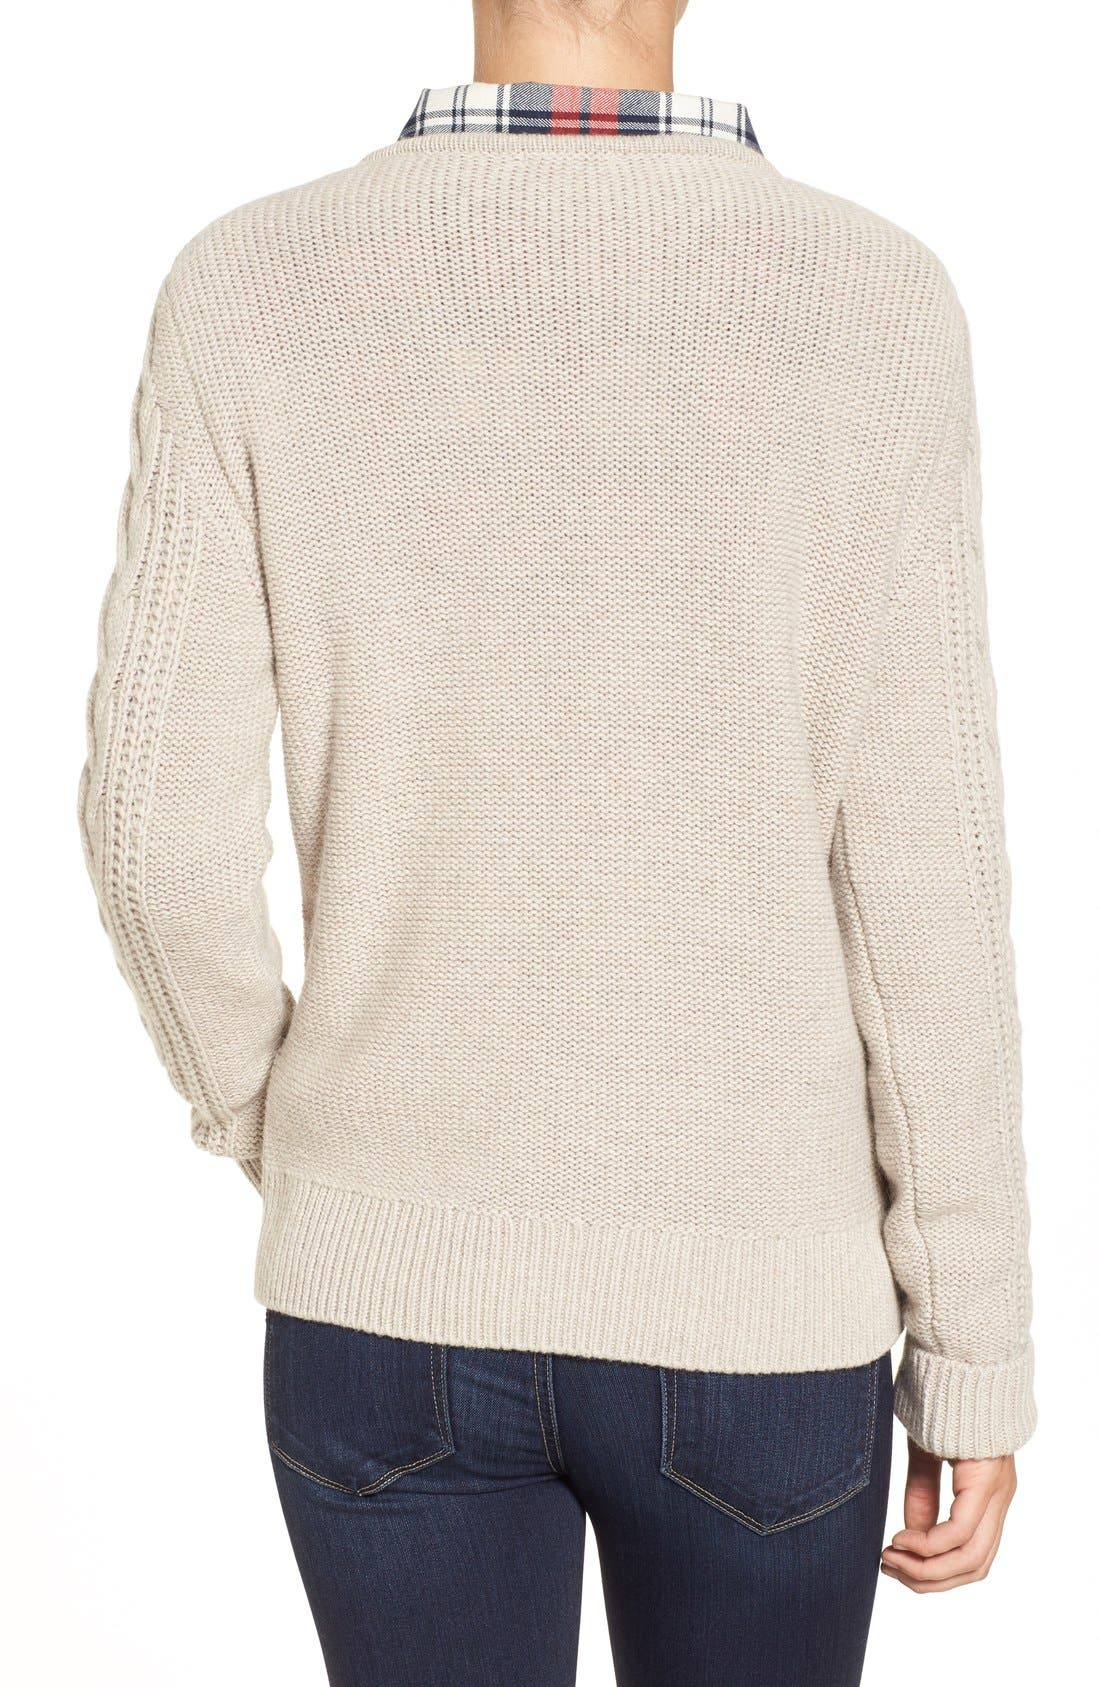 Alternate Image 2  - Barbour 'Tidewater' Cable Knit Crewneck Sweater